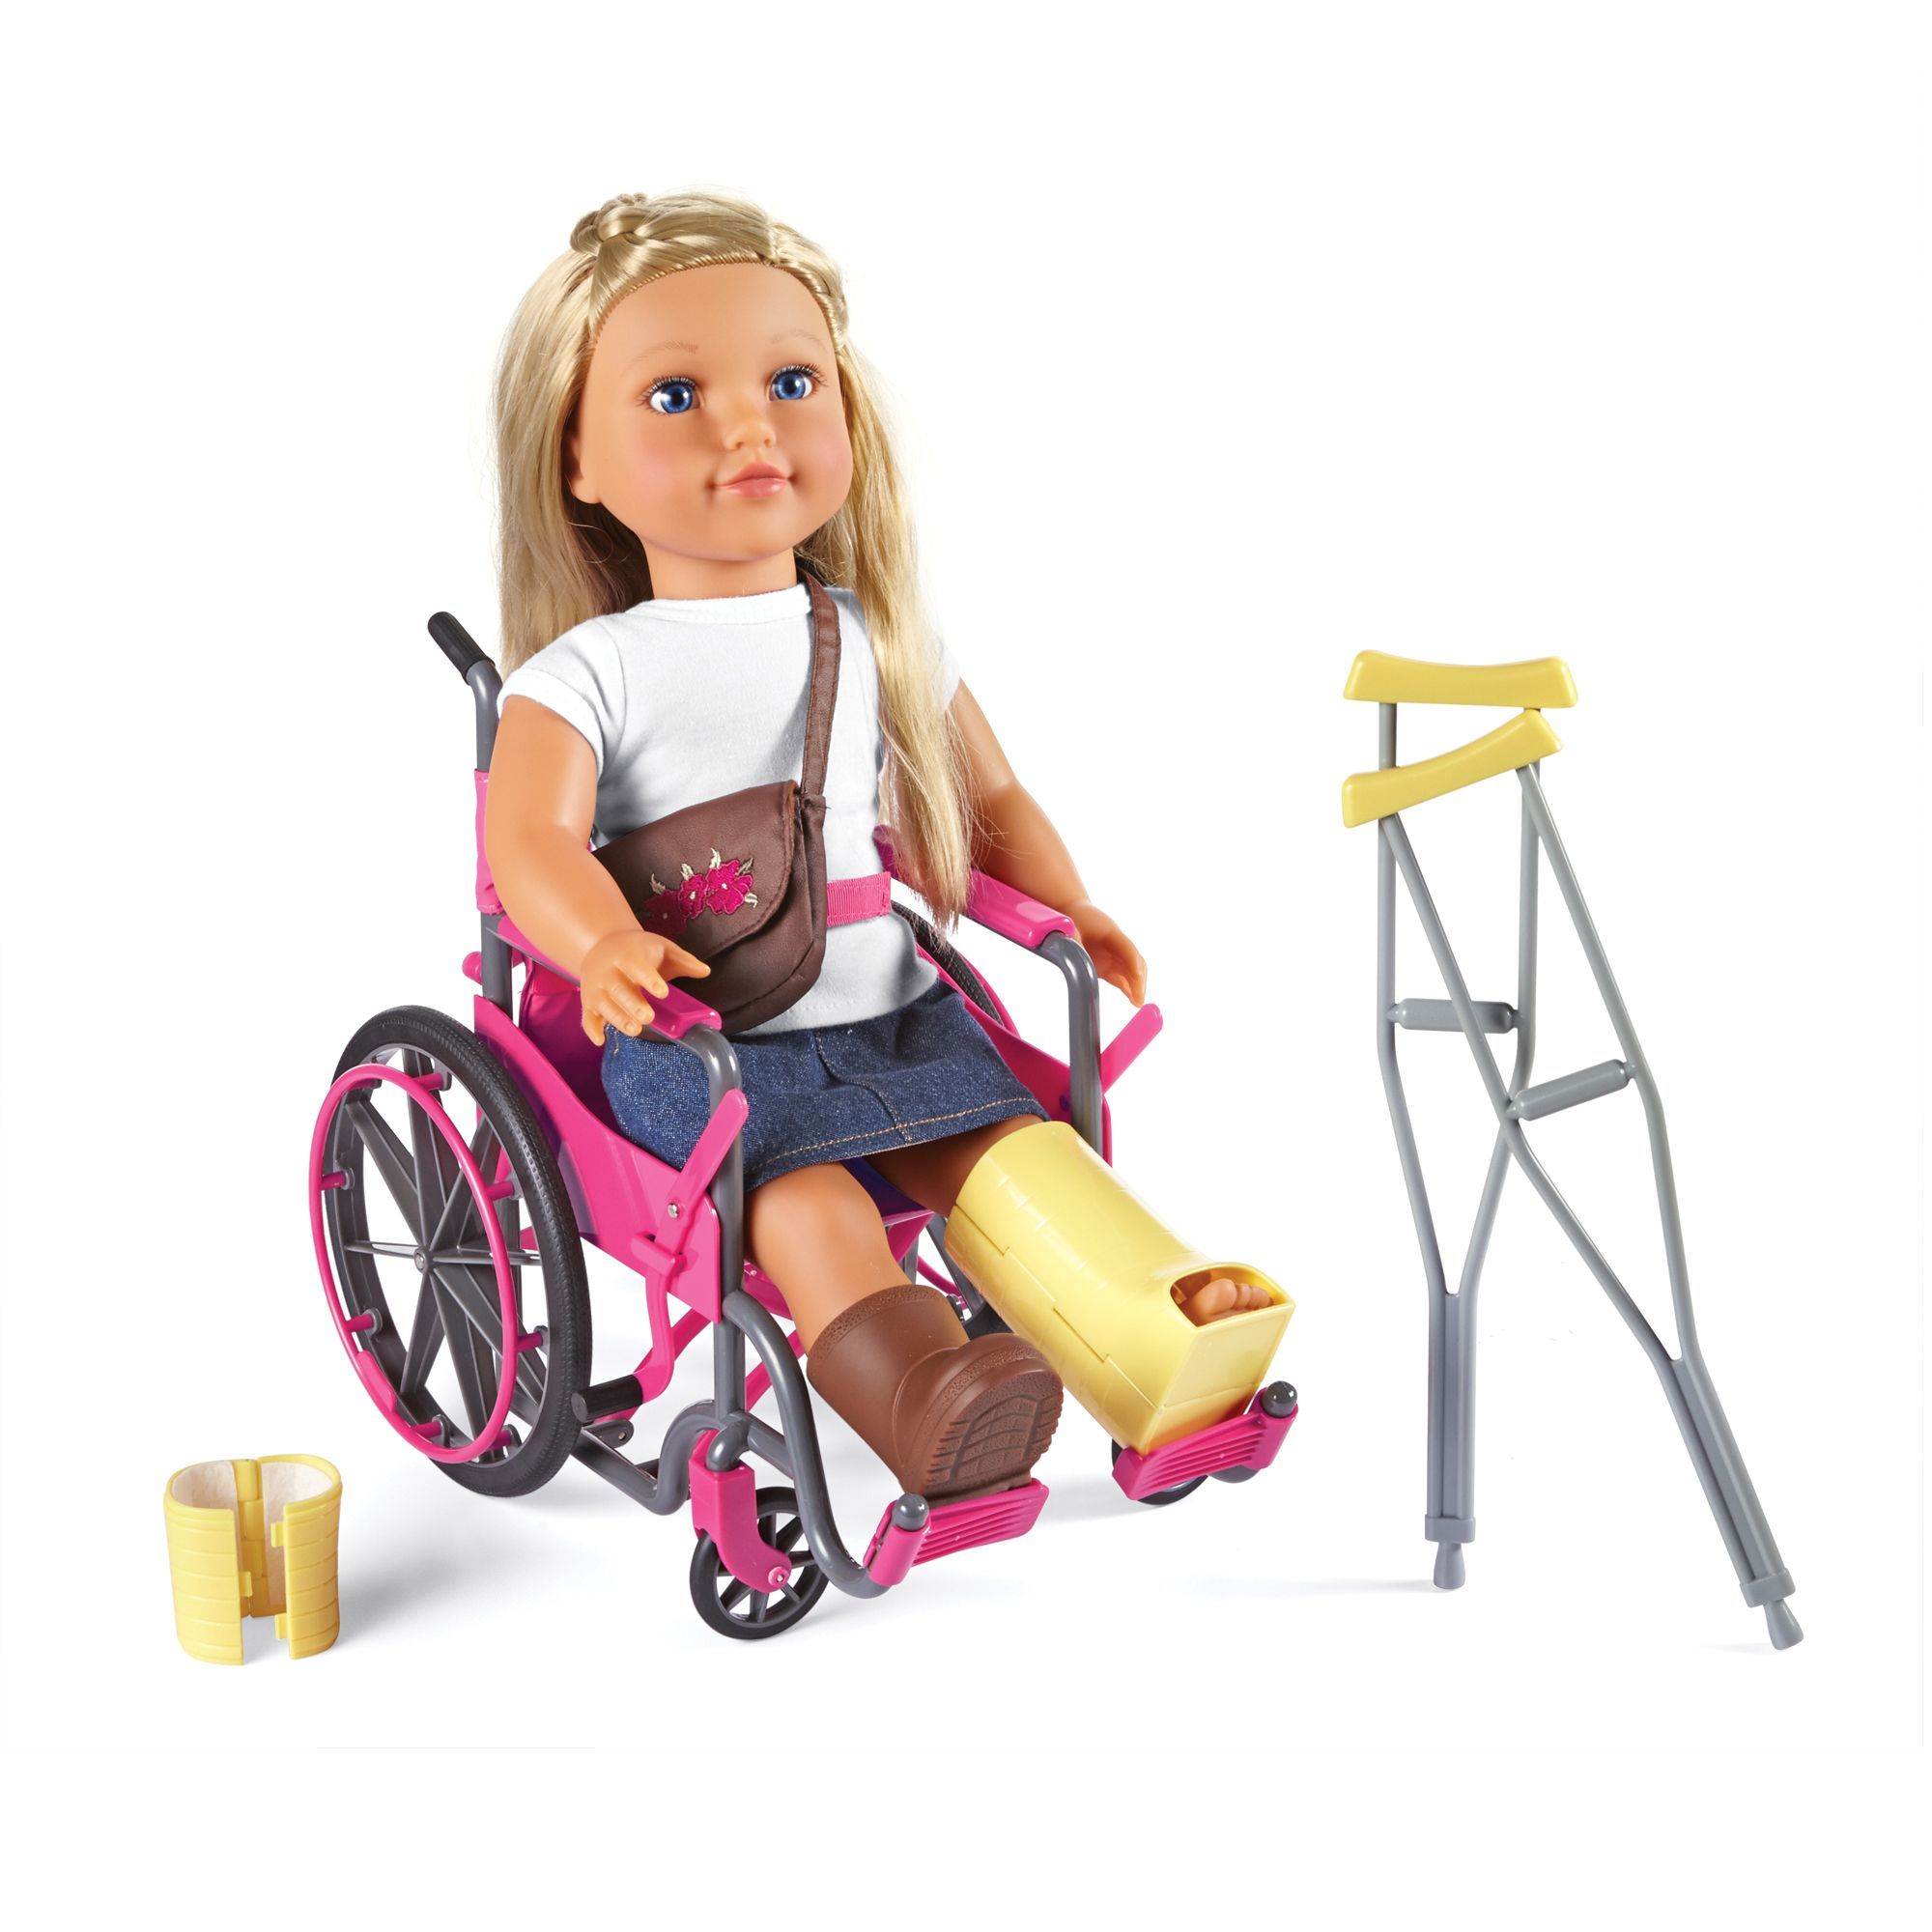 NB Wheelchair & Accessories (w/ bandage) Kids toys